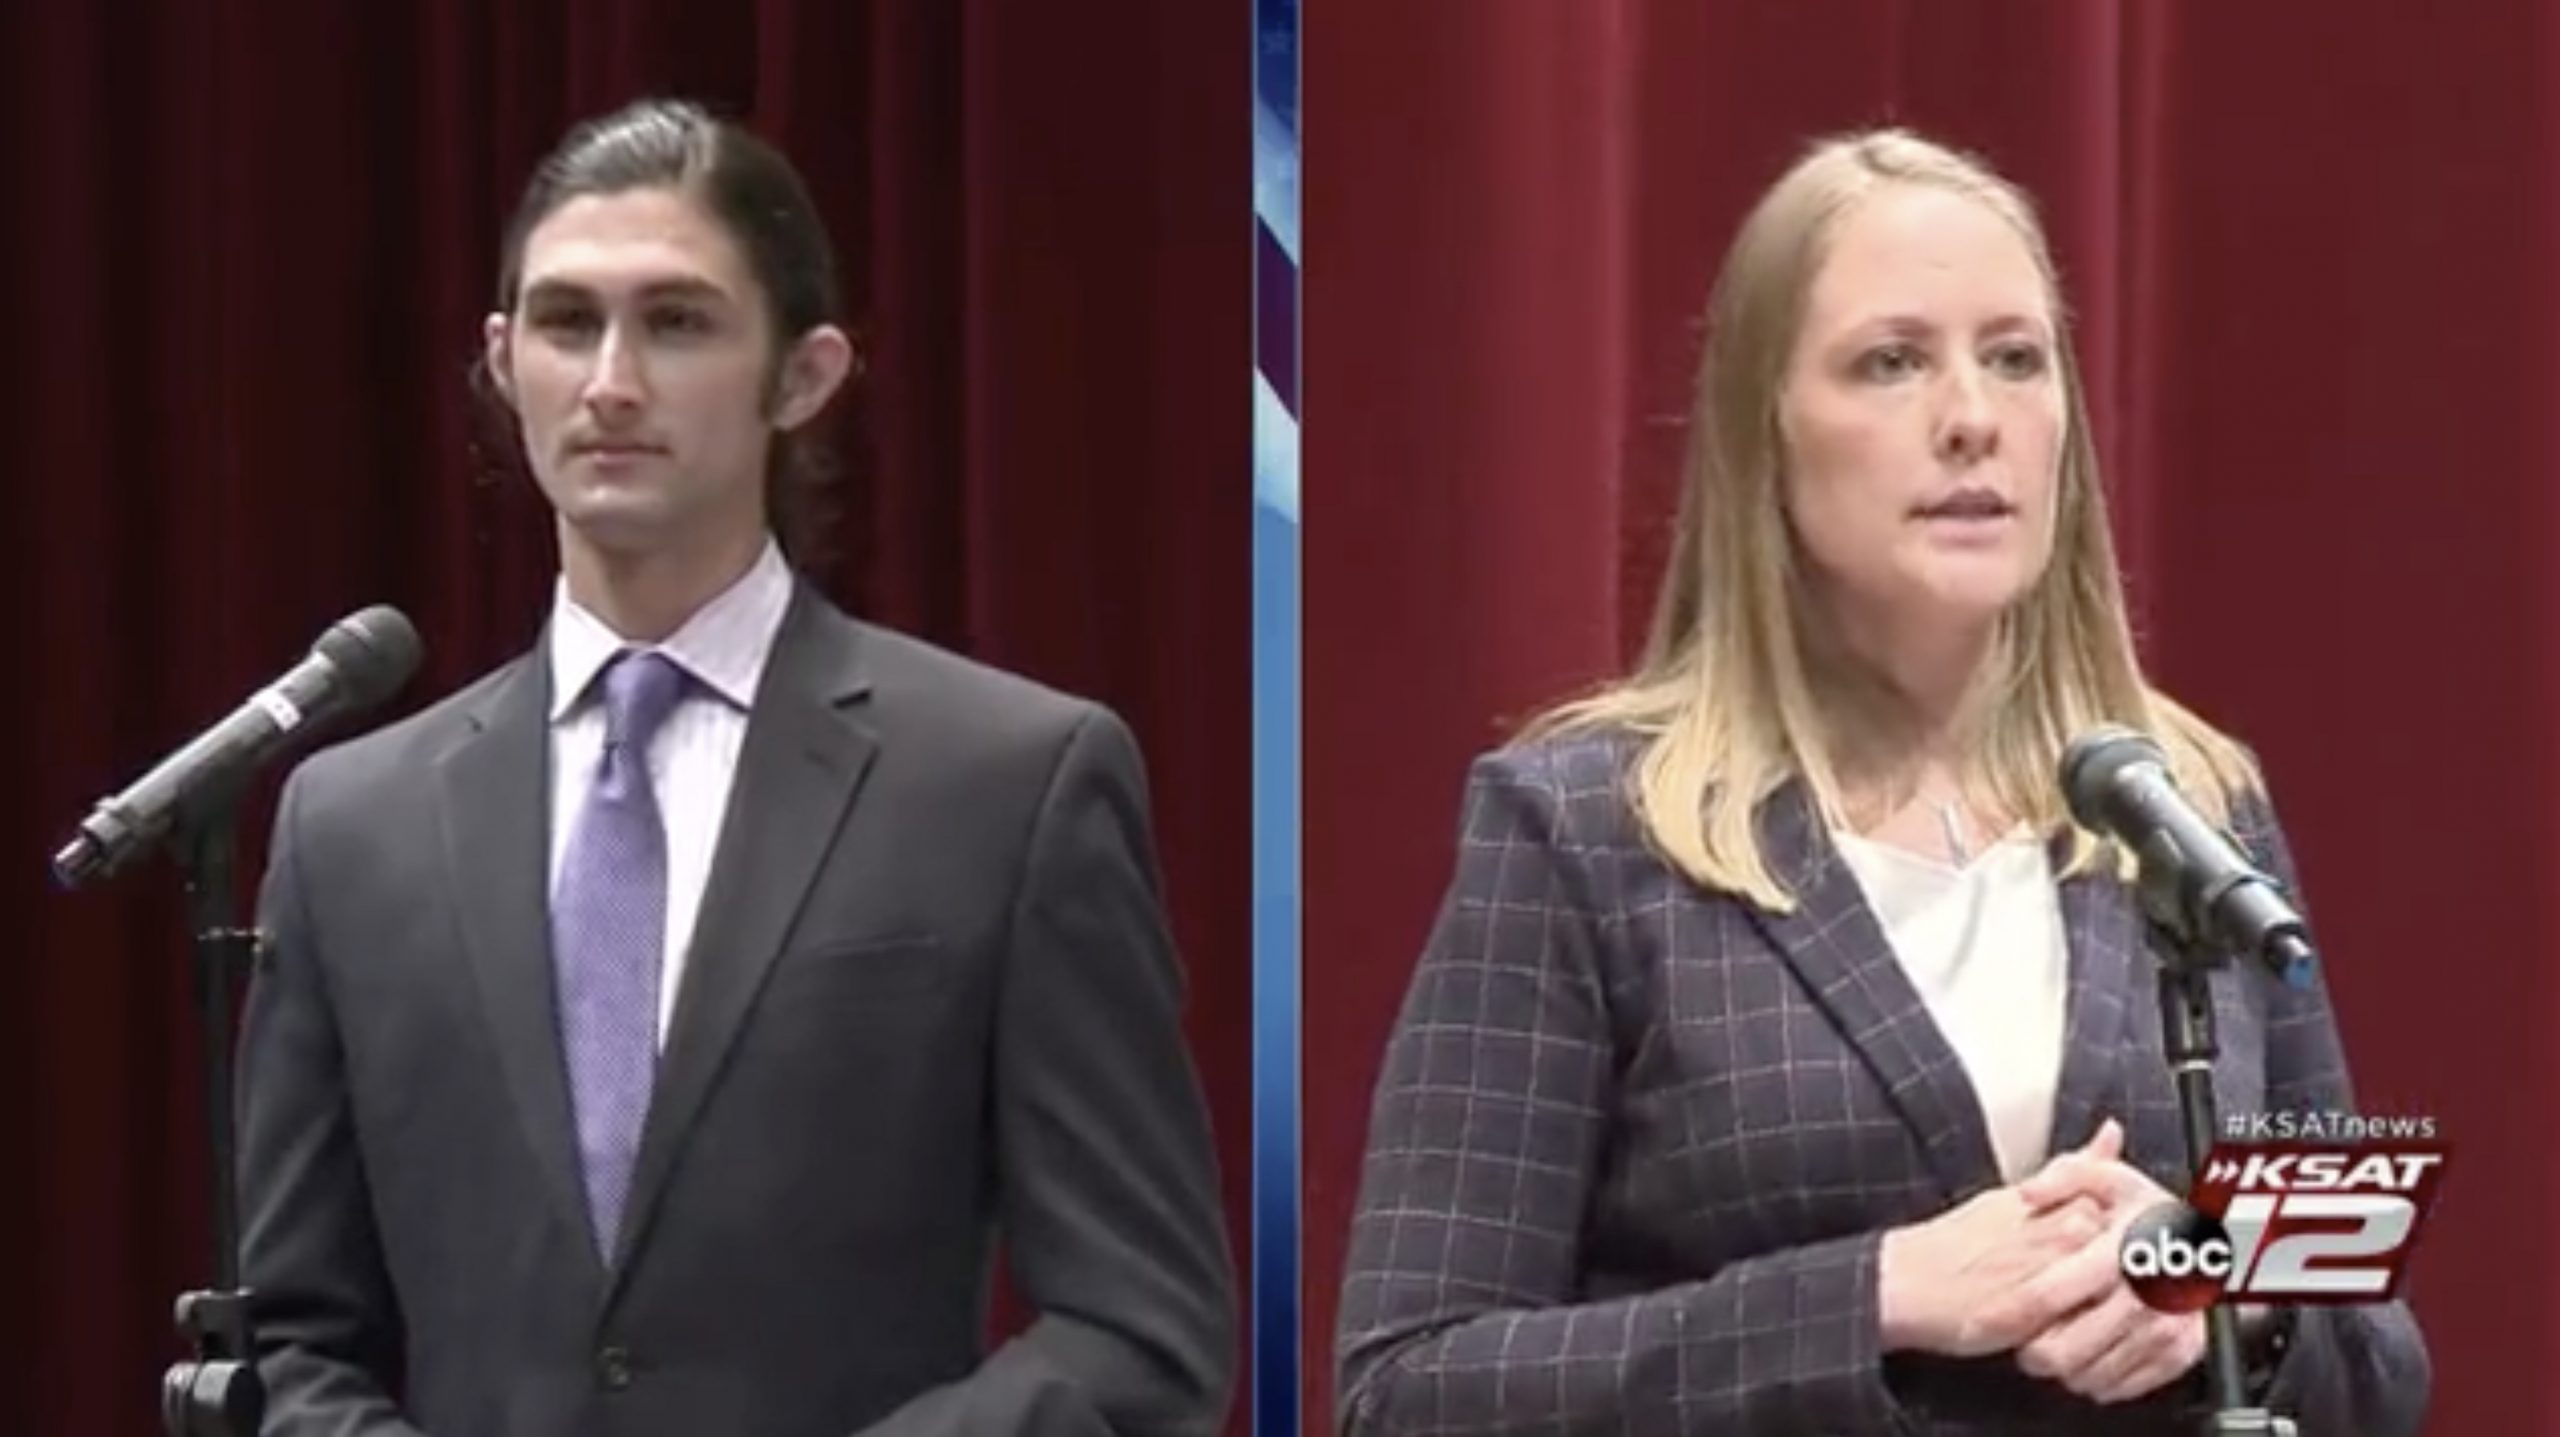 From left, James Dykman, a data and policy analyst for Fix SAPD debates Sgt. Rachel Barnes, a negotiator with the San Antonio Police Officers Association, during an event cohosted by KSAT and the San Antonio Report on Proposition B.